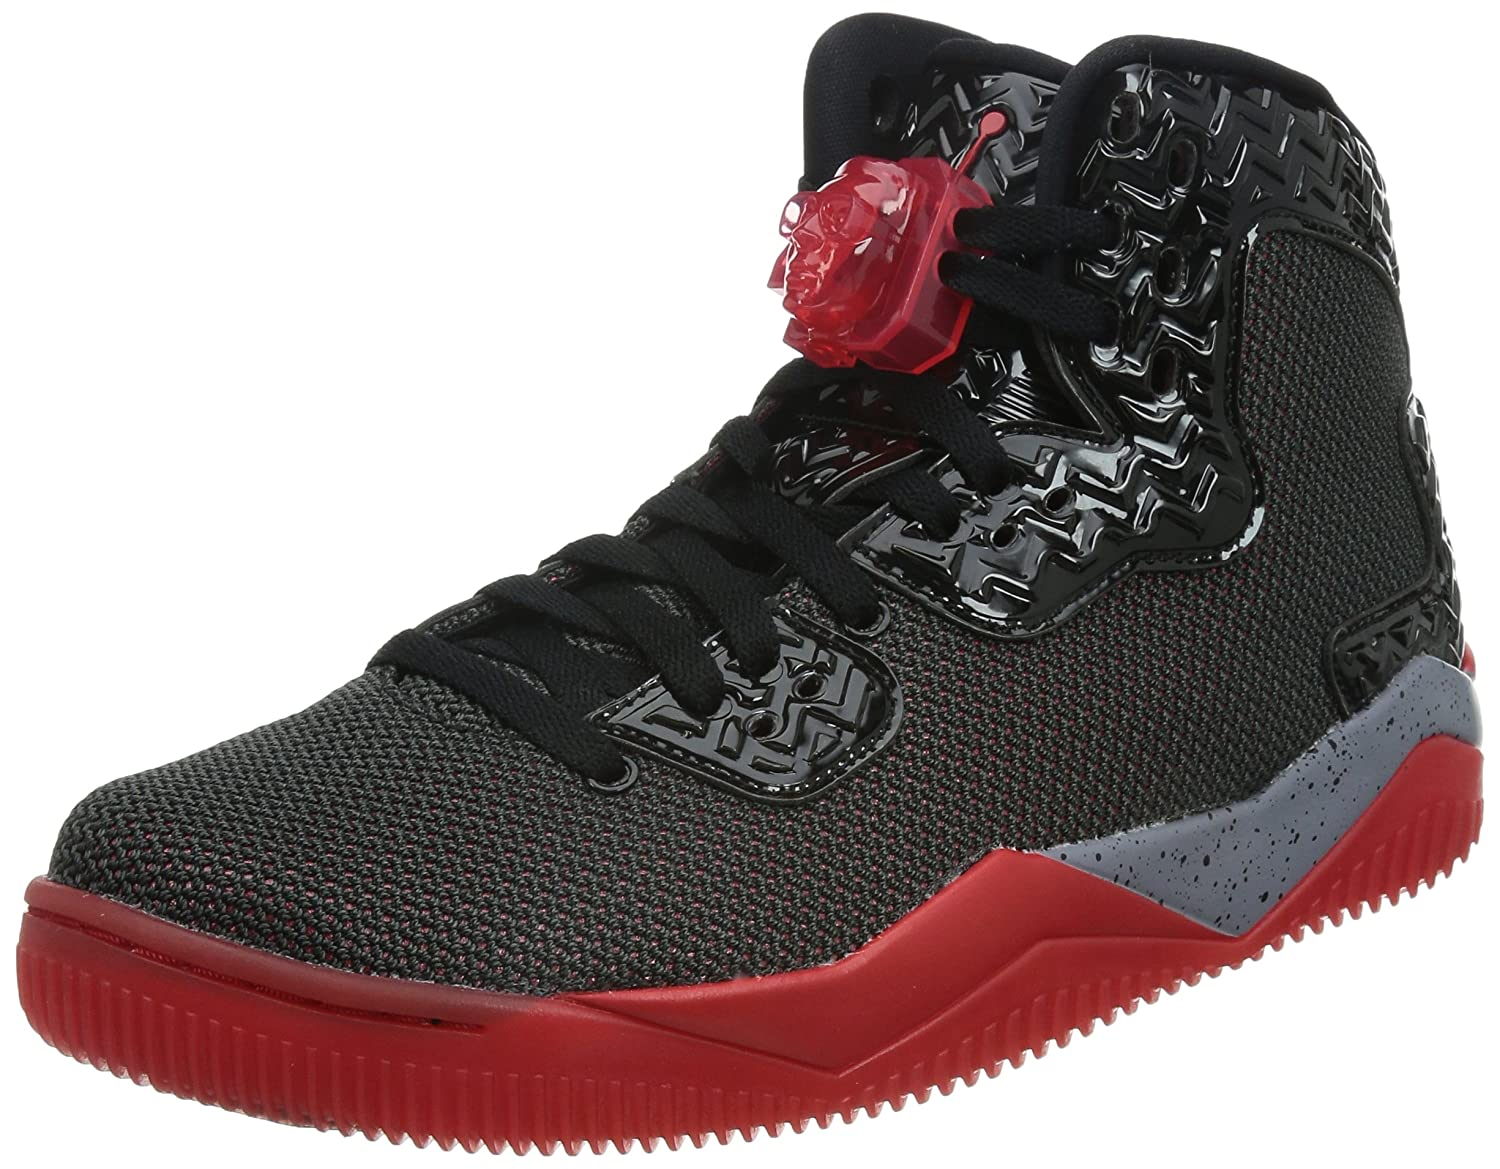 [ナイキ] Nike - Spike Forty [並行輸入品] B019ADQBFK Black/Fire Red/Cement Grey 8 D(M) US